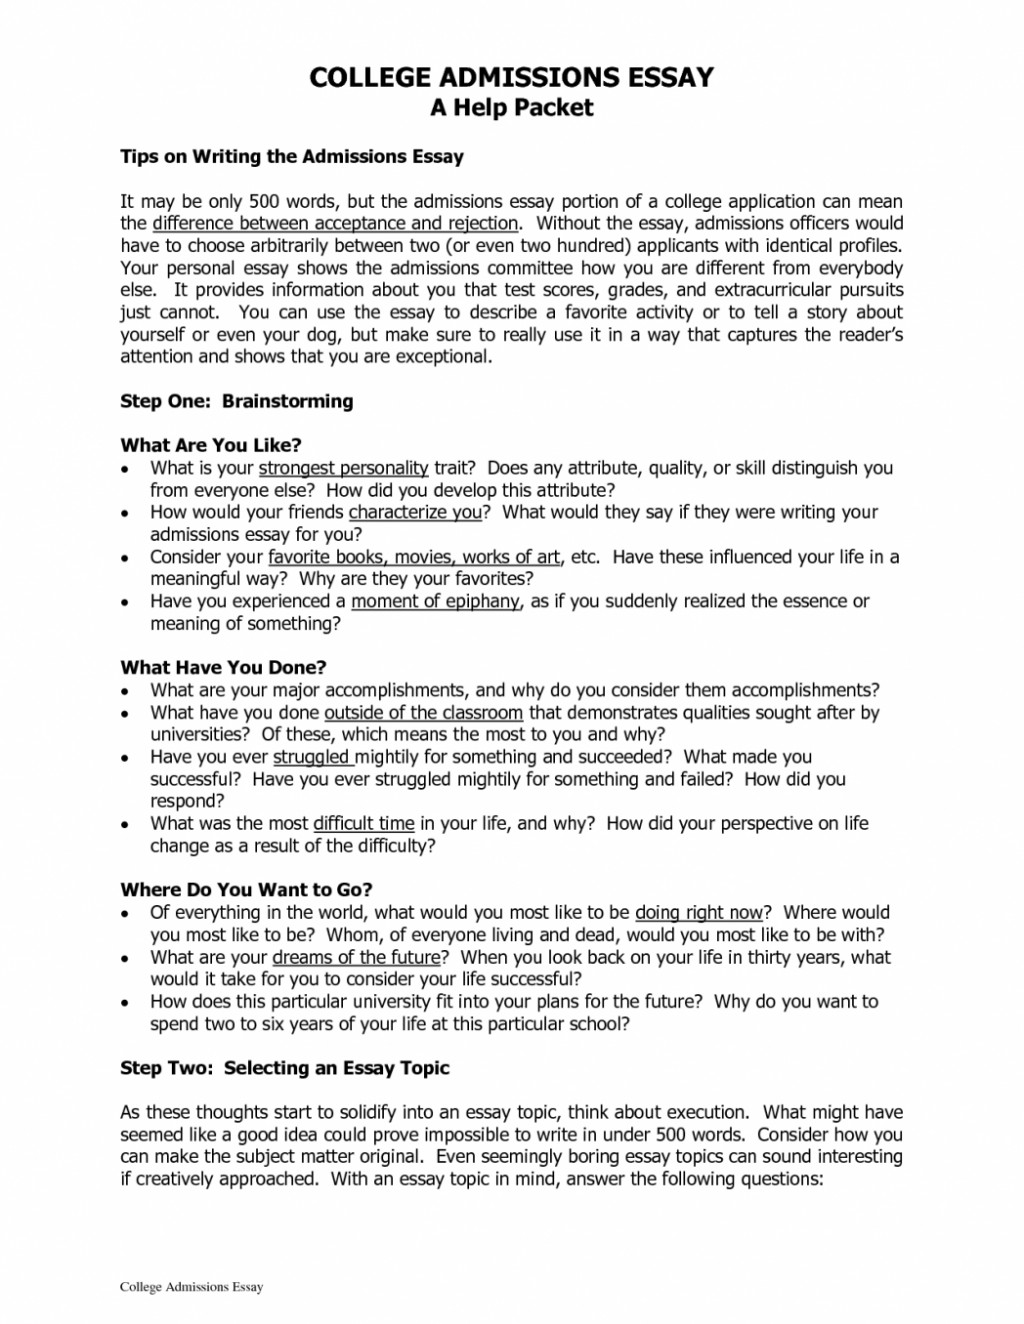 002 Essay Example Best Essays College App Sample Application Top Iyjxl Ever Examples Topics That Worked Reddit Breathtaking 2016 Personal Australian Large